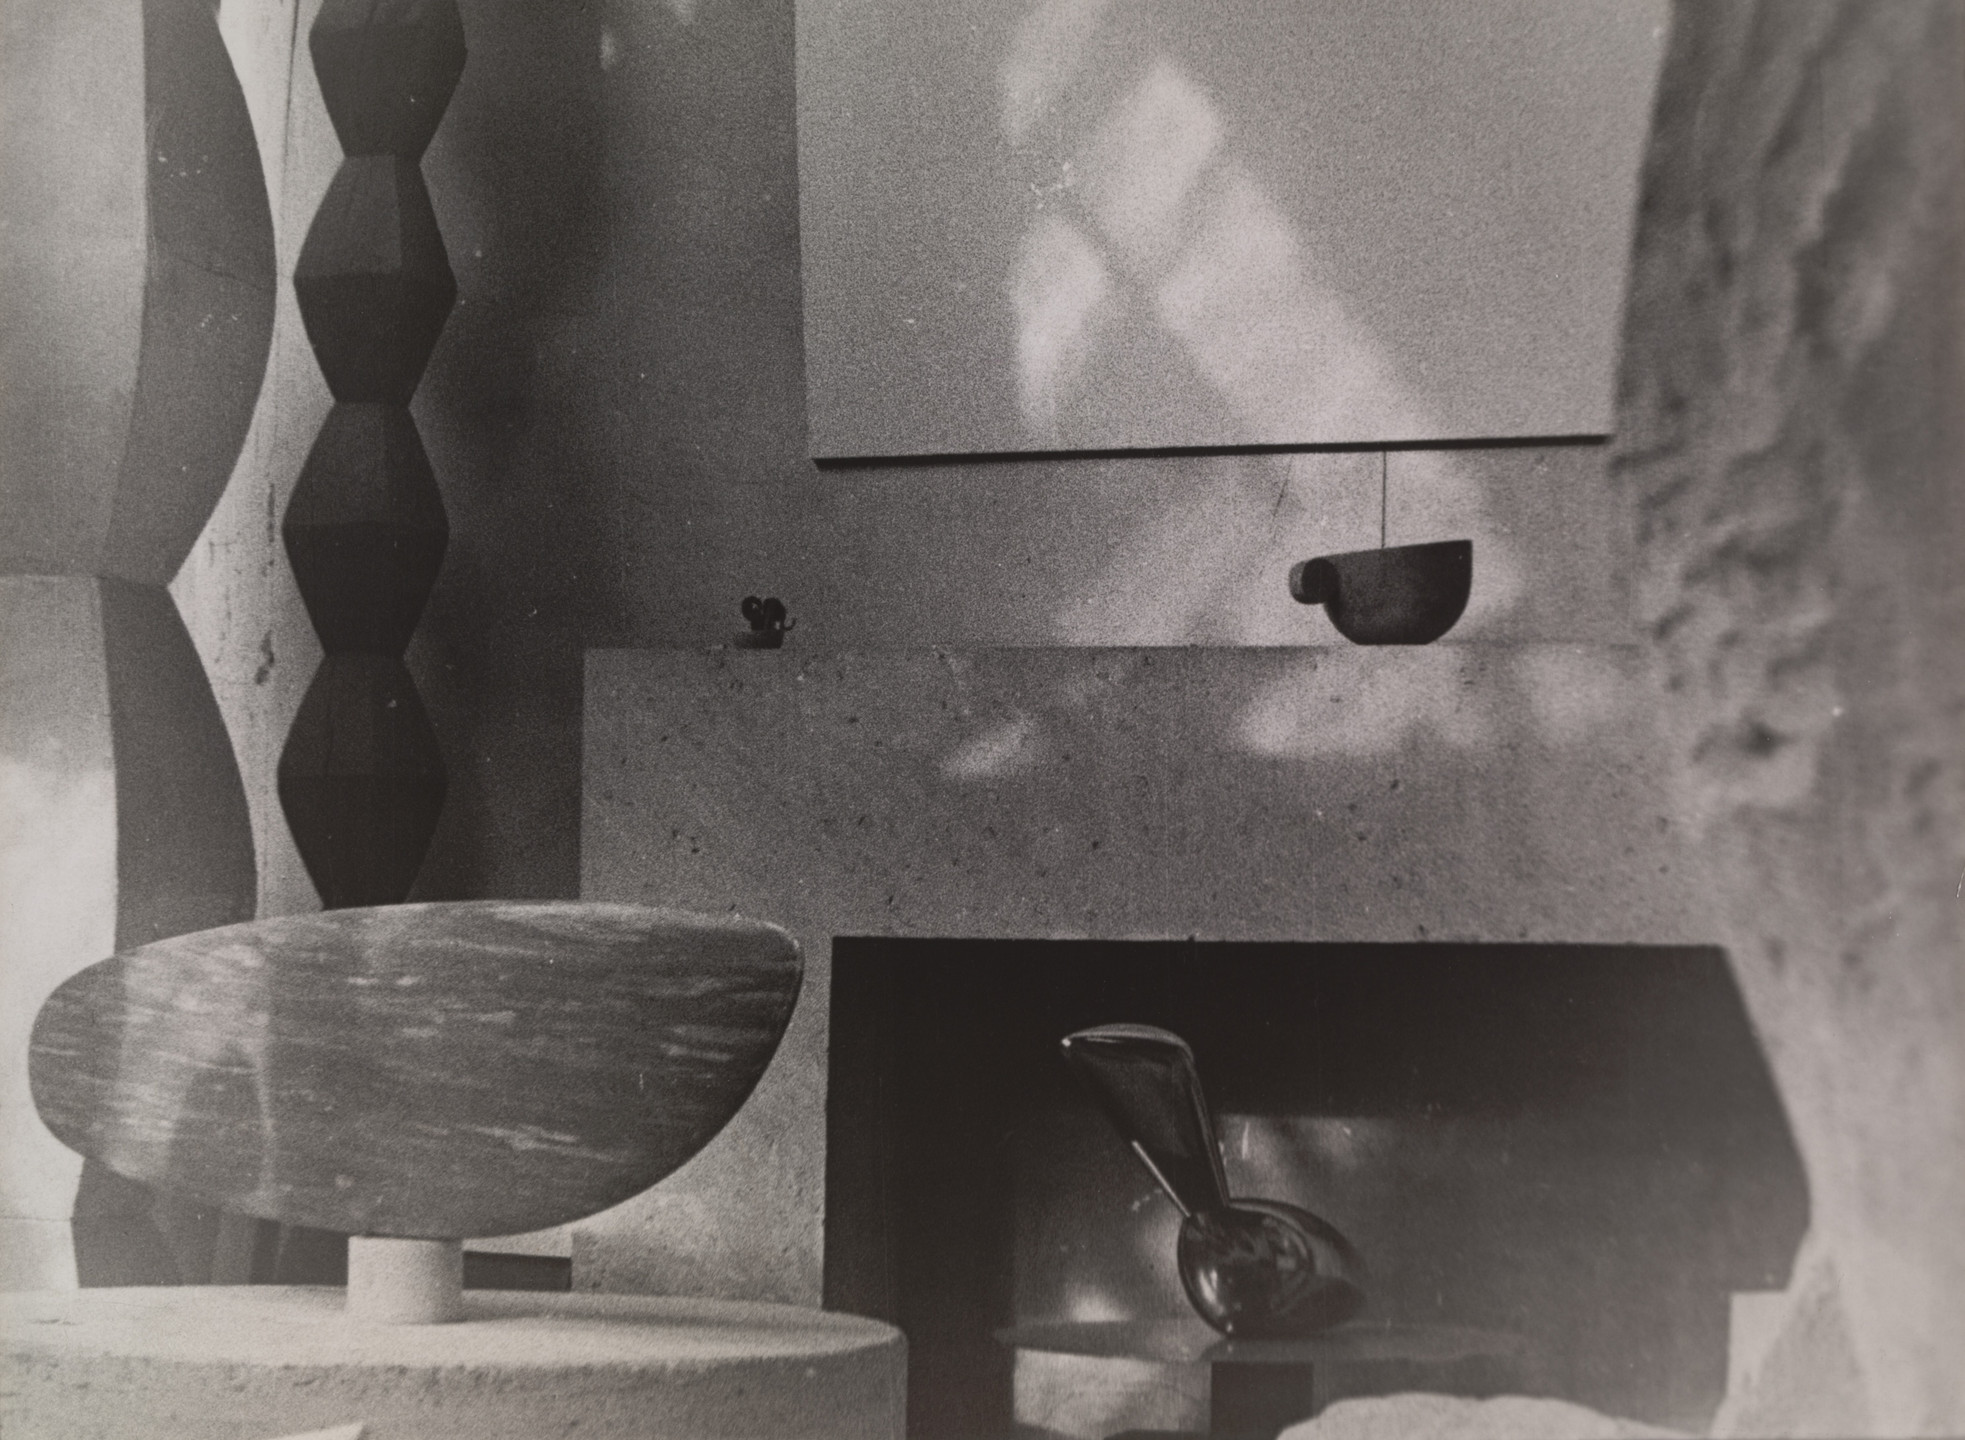 Constantin Brâncuși. Untitled (View of the Studio with Endless Columns III and IV, The Fish, Leda, and Cup II). c. 1933-34